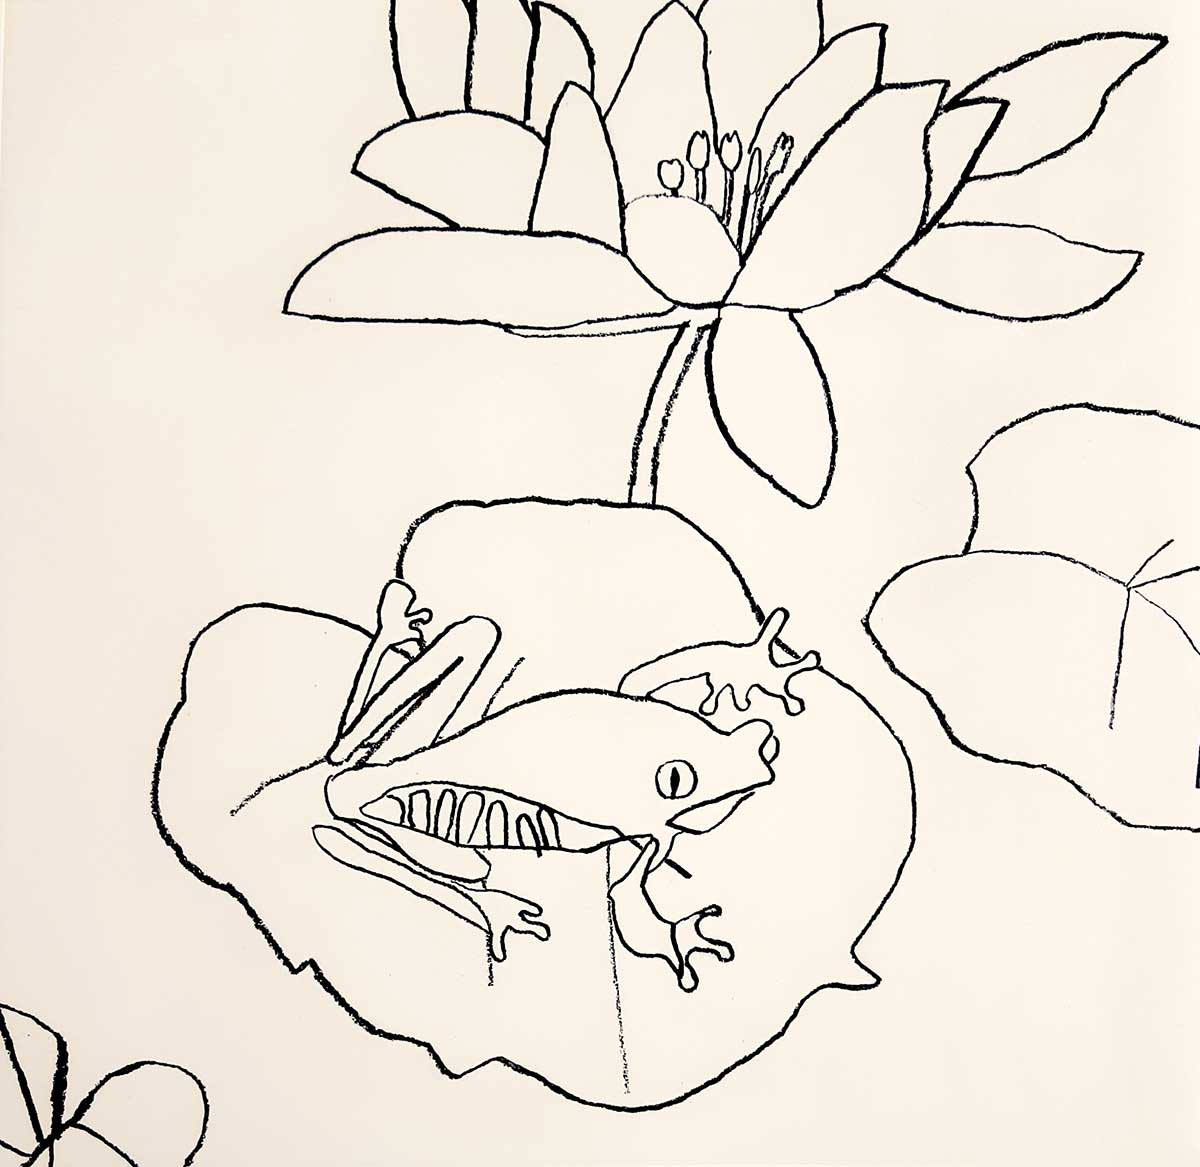 Frog Etching entered in Wildlife Artist of the Year 2020